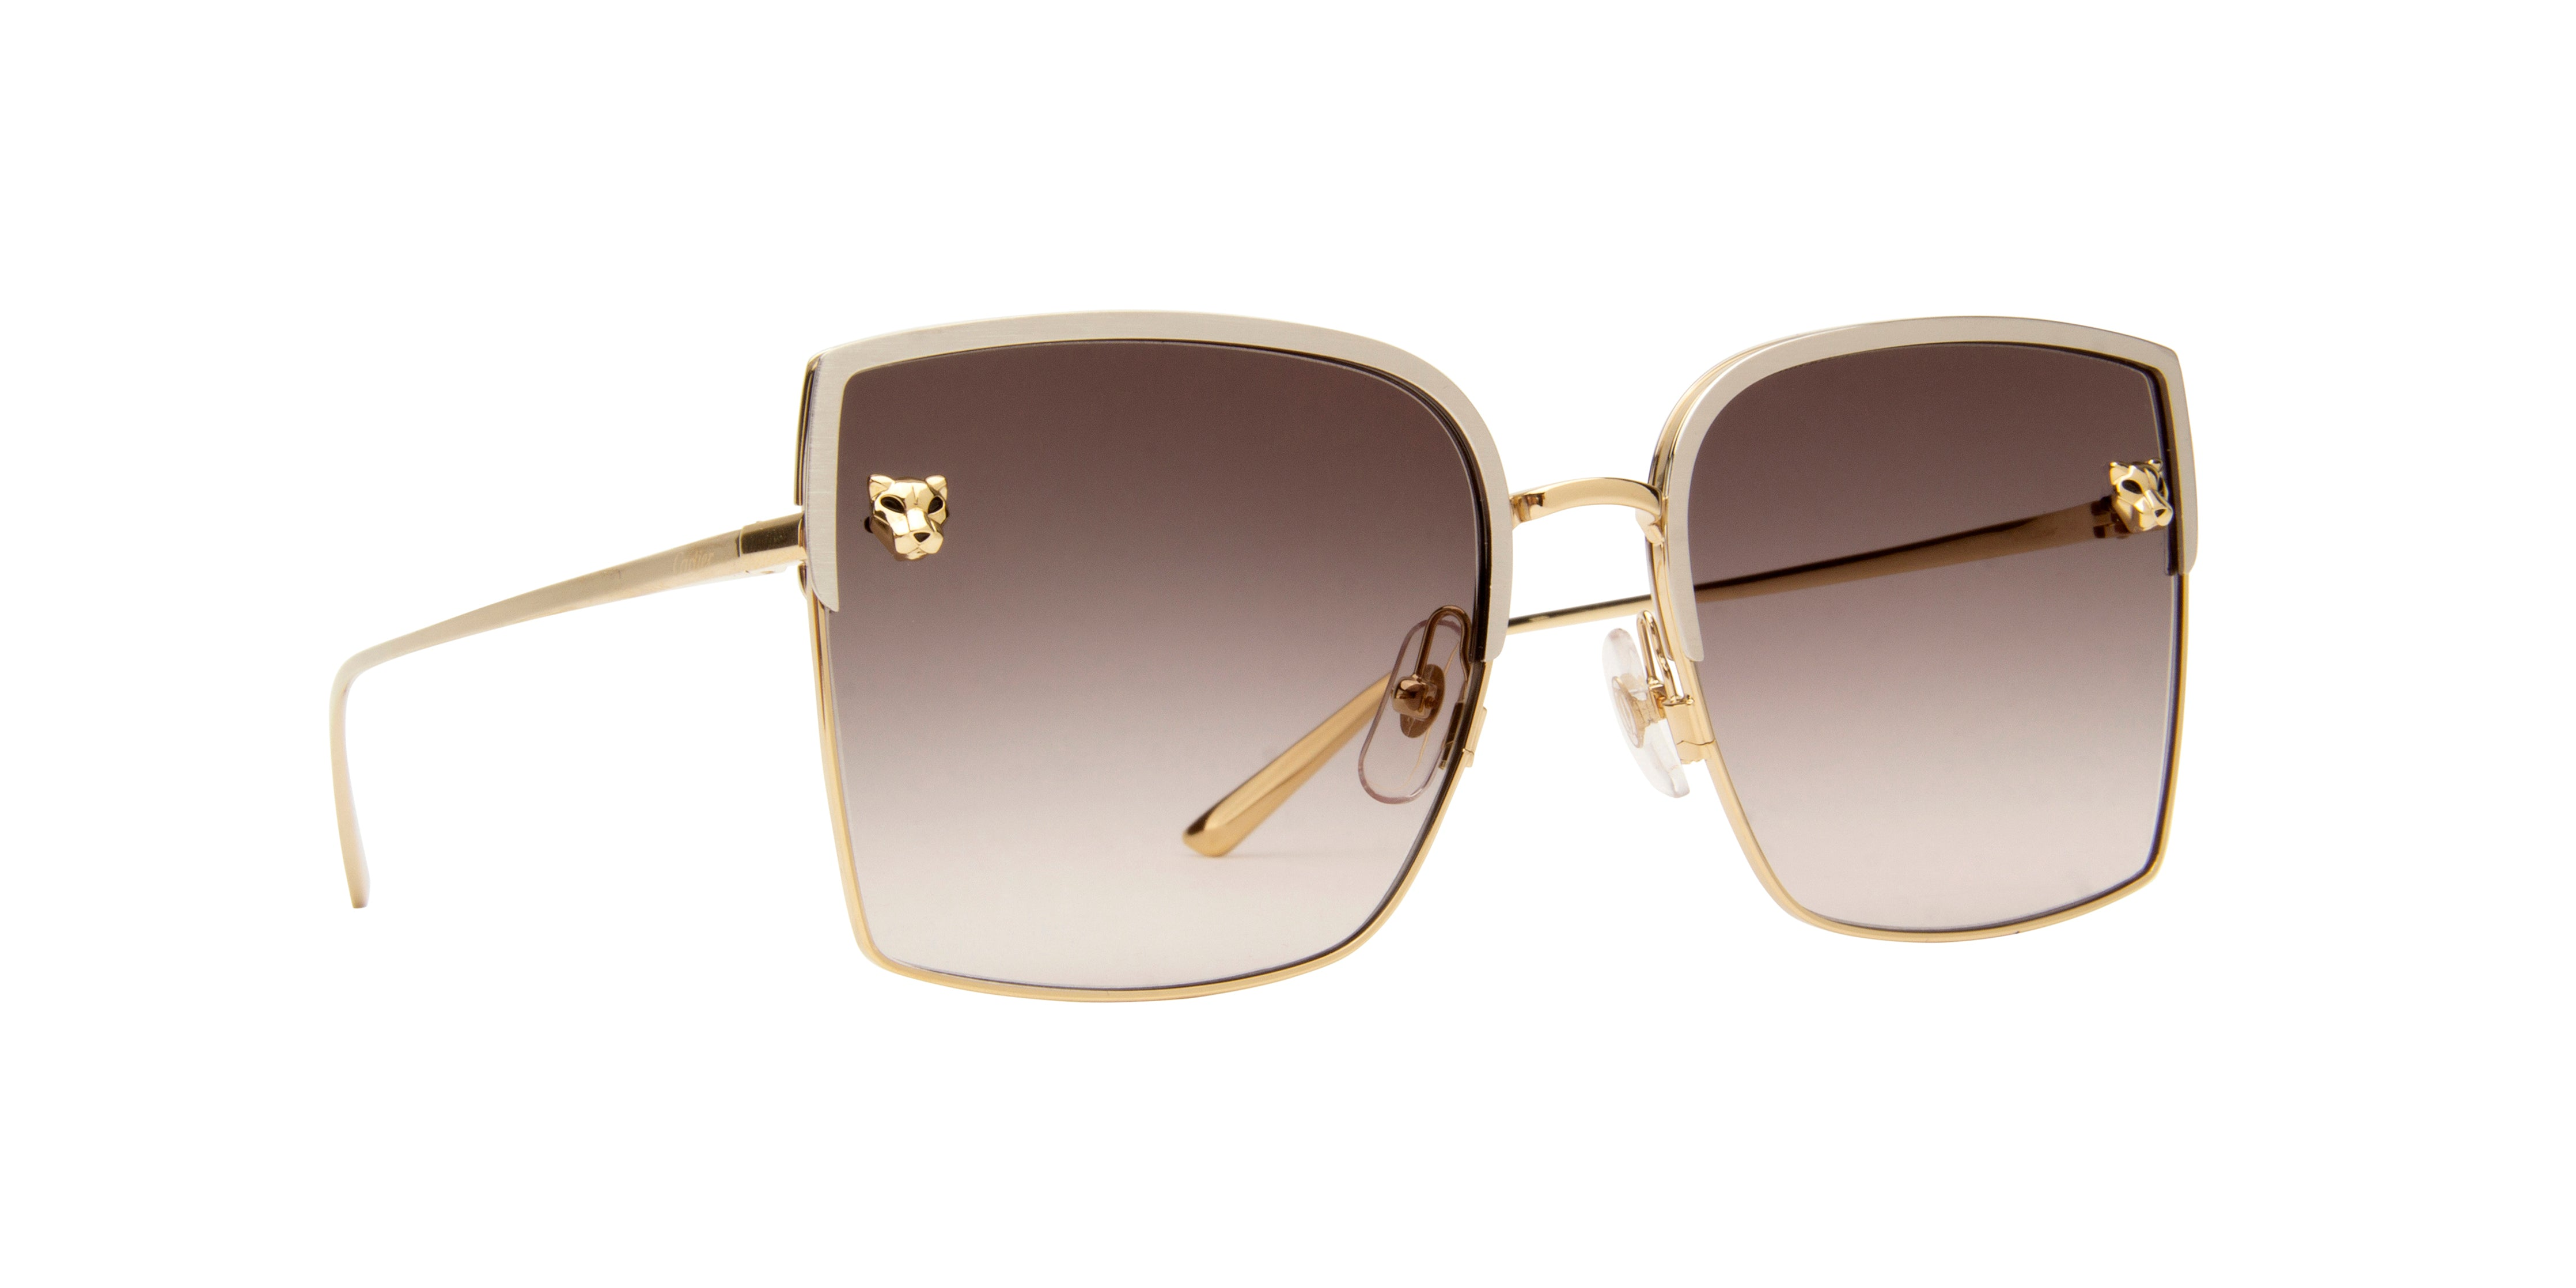 Cartier - CT0199S Silver Oversized Women Sunglasses - 58mm